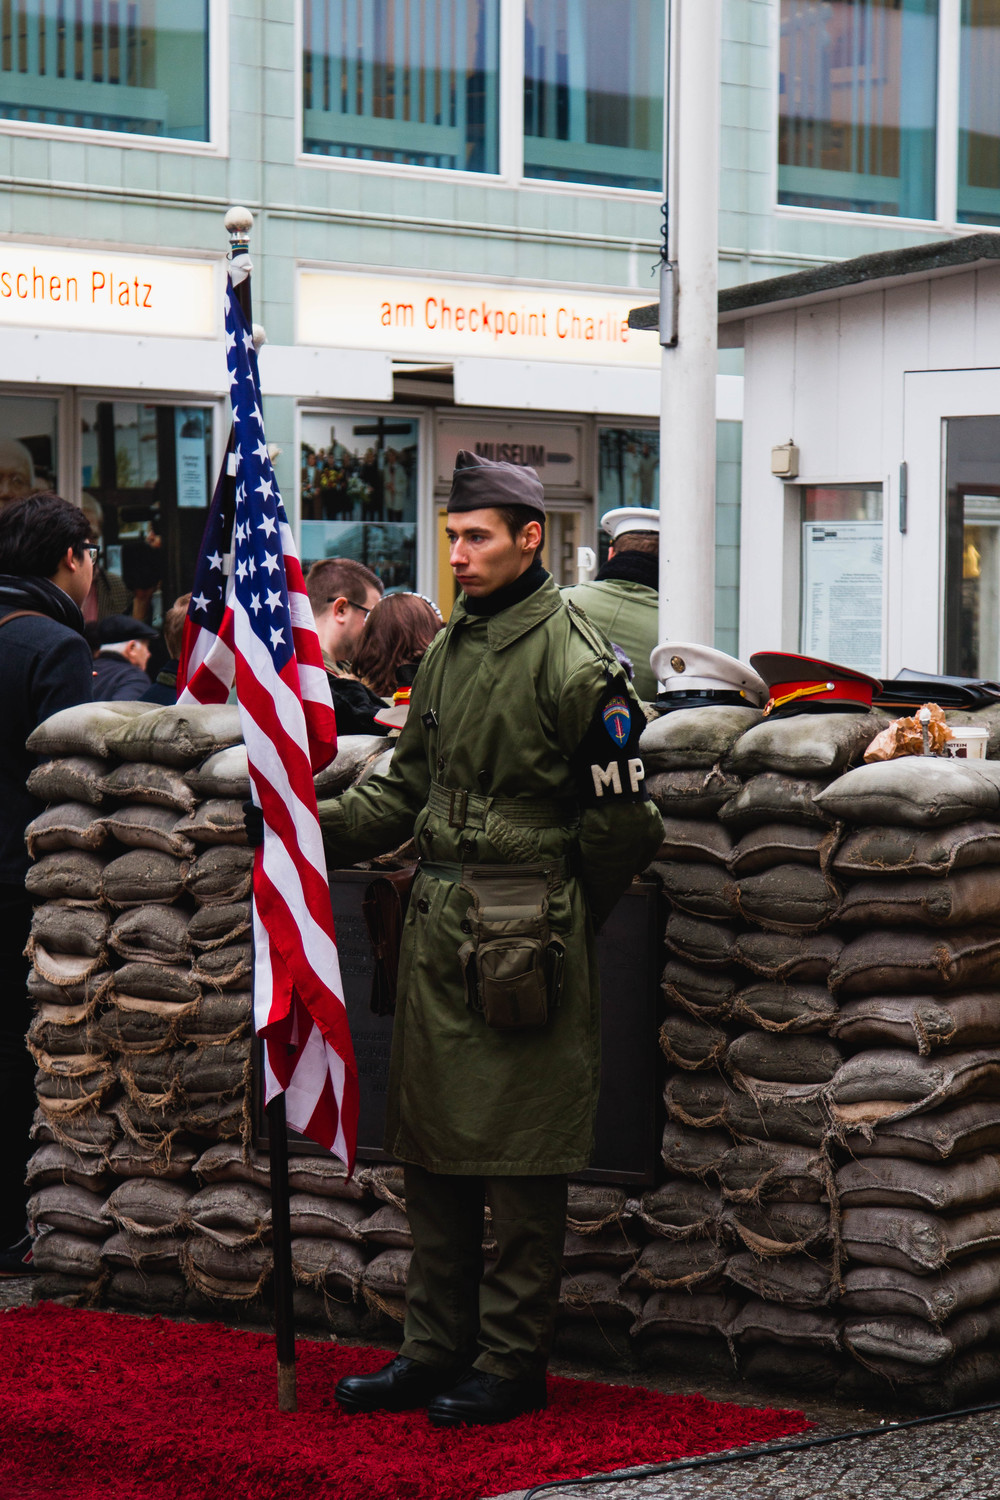 Guard - Checkpoint Charlie, Berlin, Germany 02/12/2015